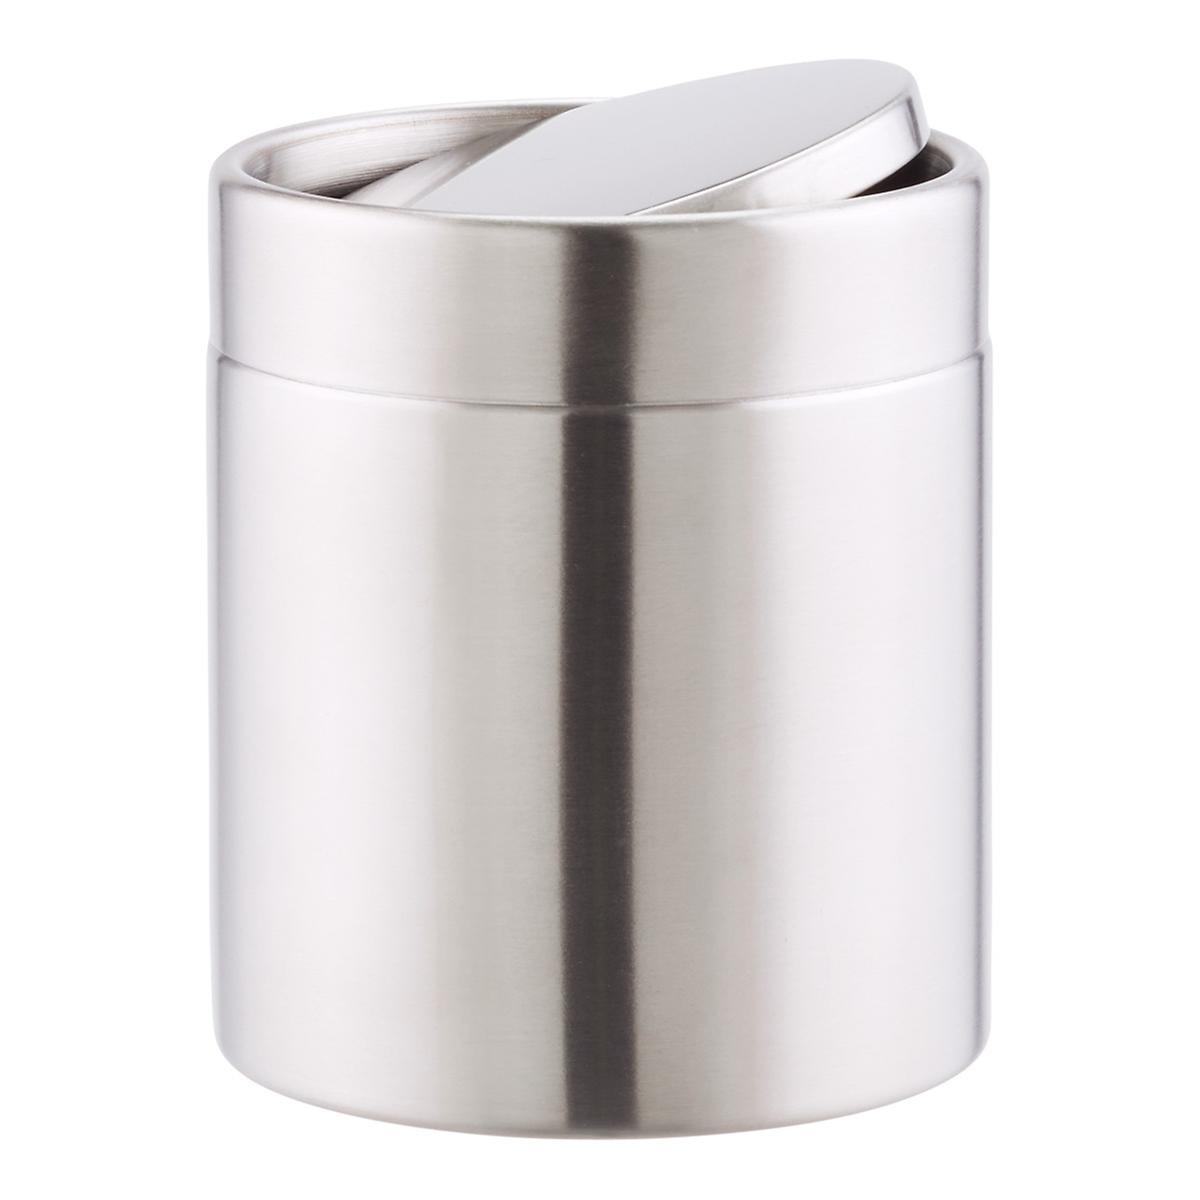 Stainless Steel Swinglid Countertop Trash Can